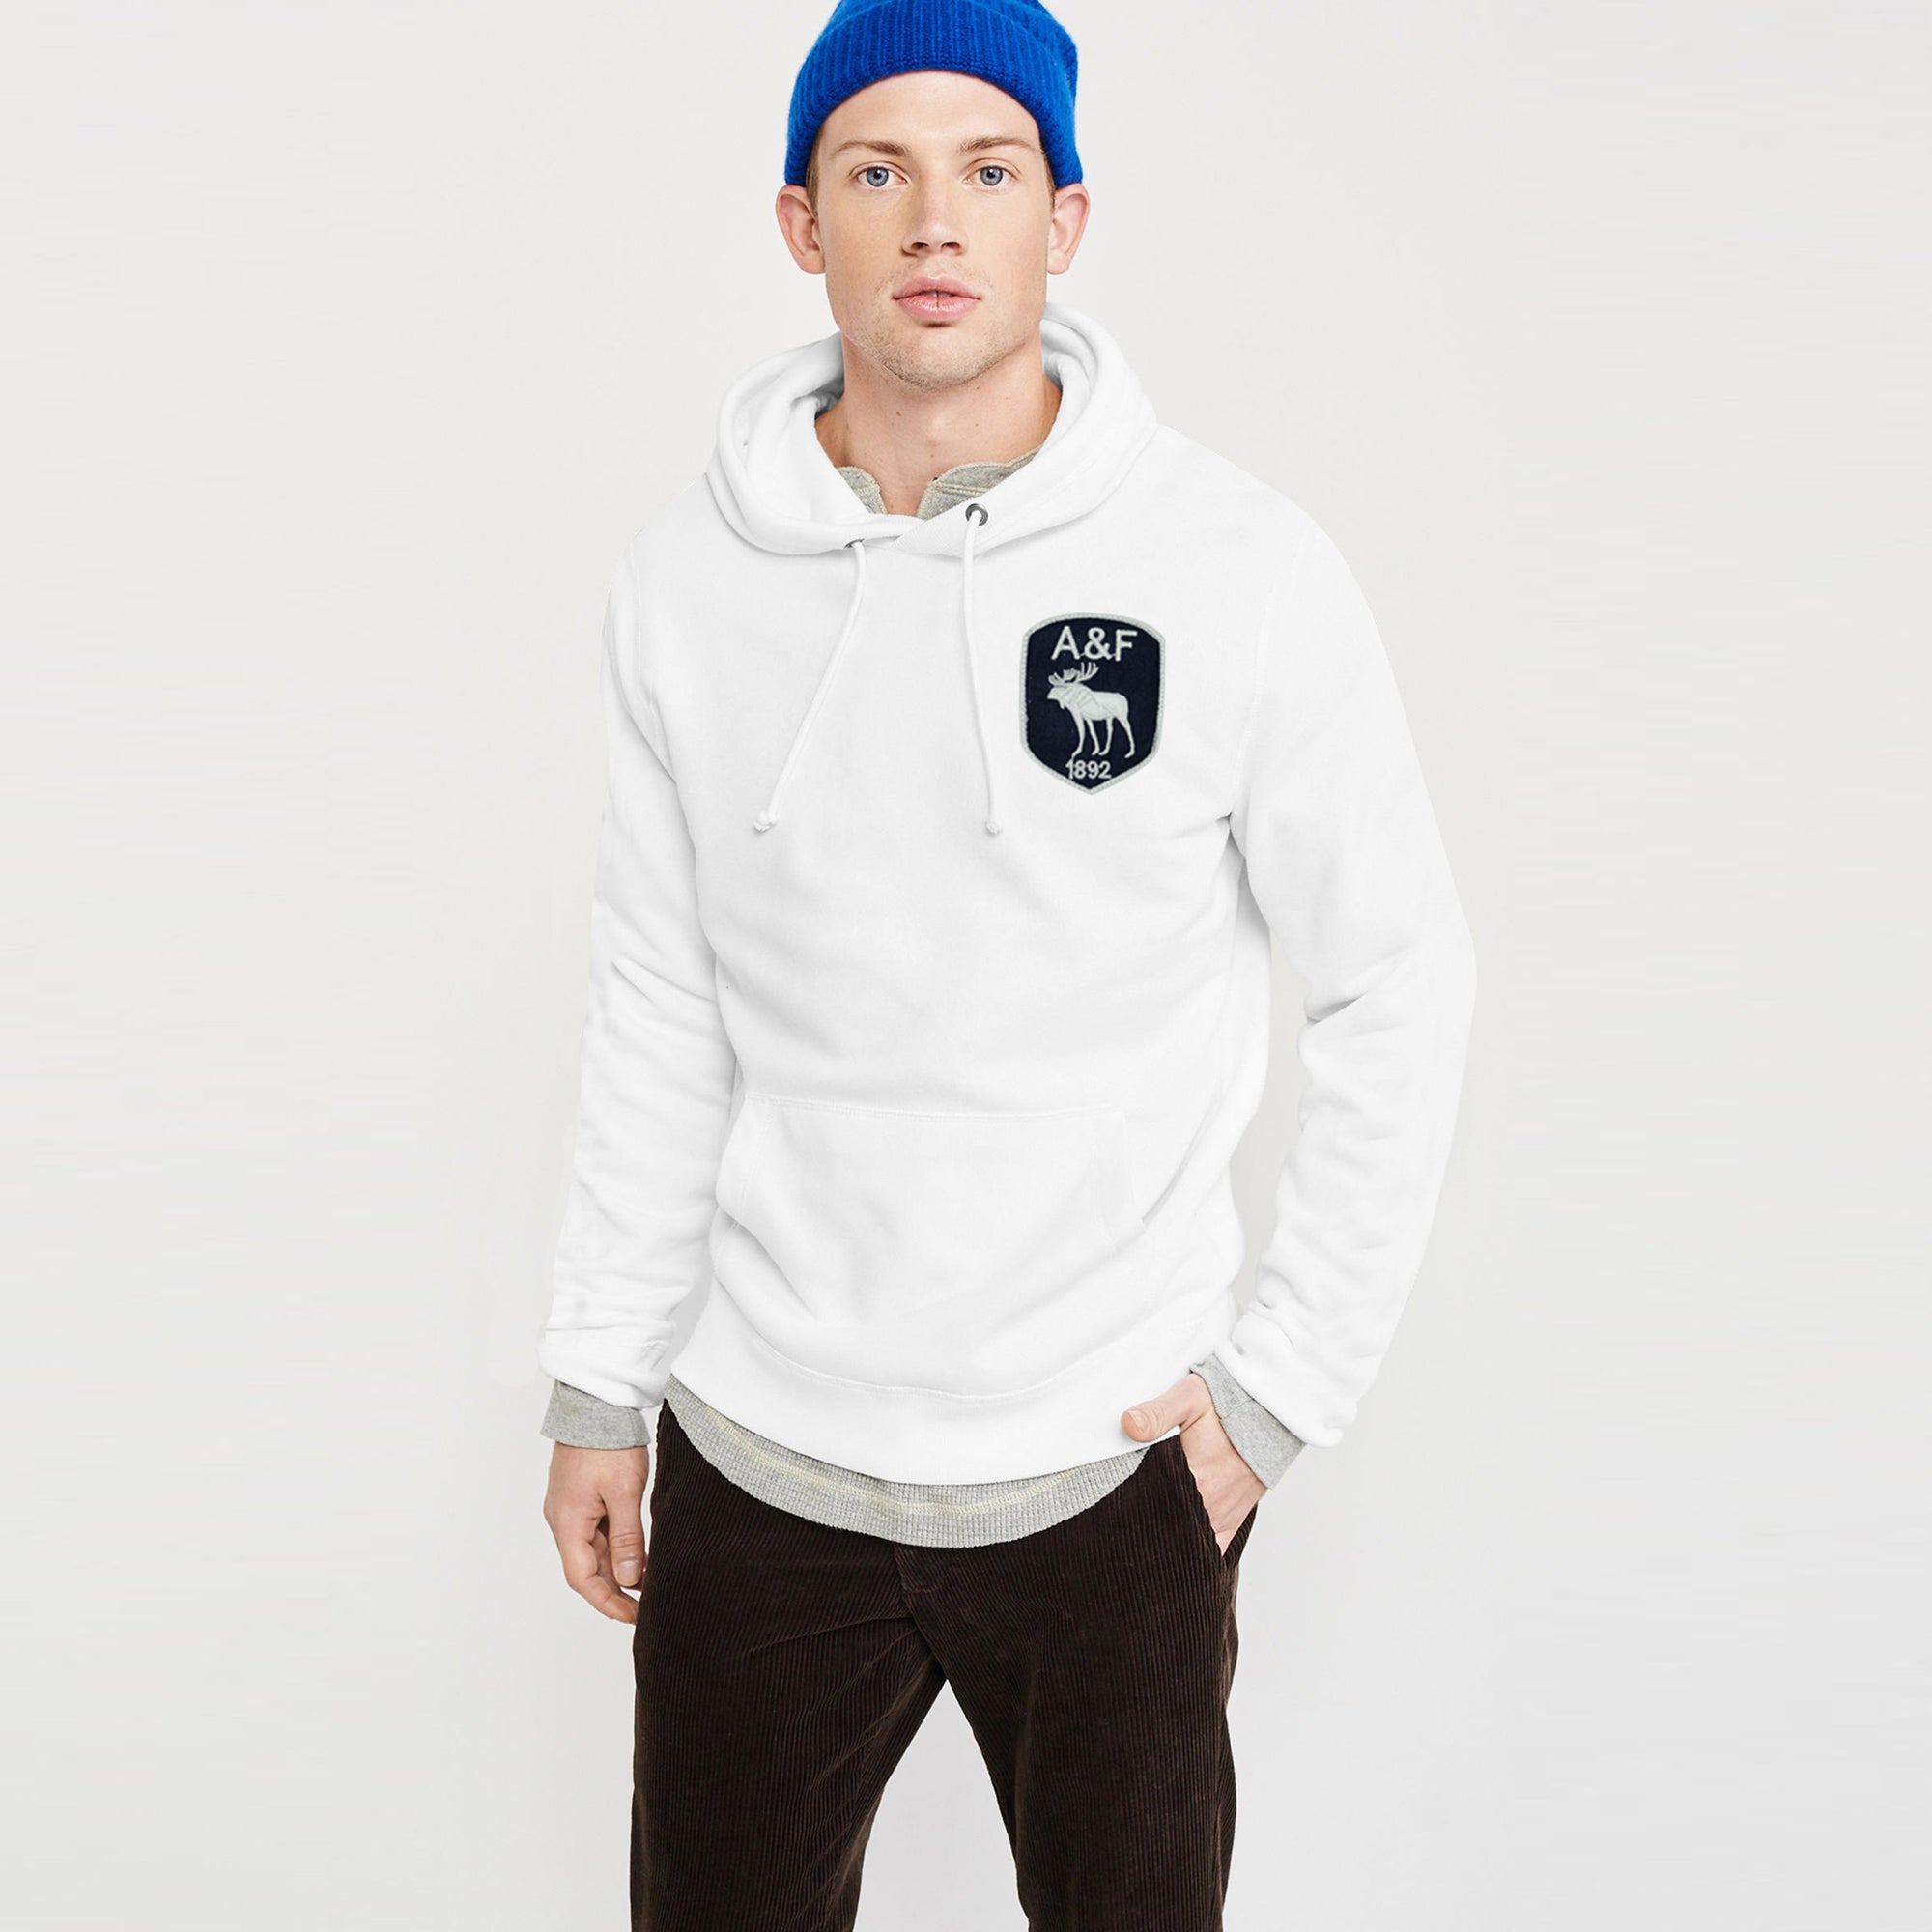 A&F Fleece Pullover Hoodie For Men-White-BE7762